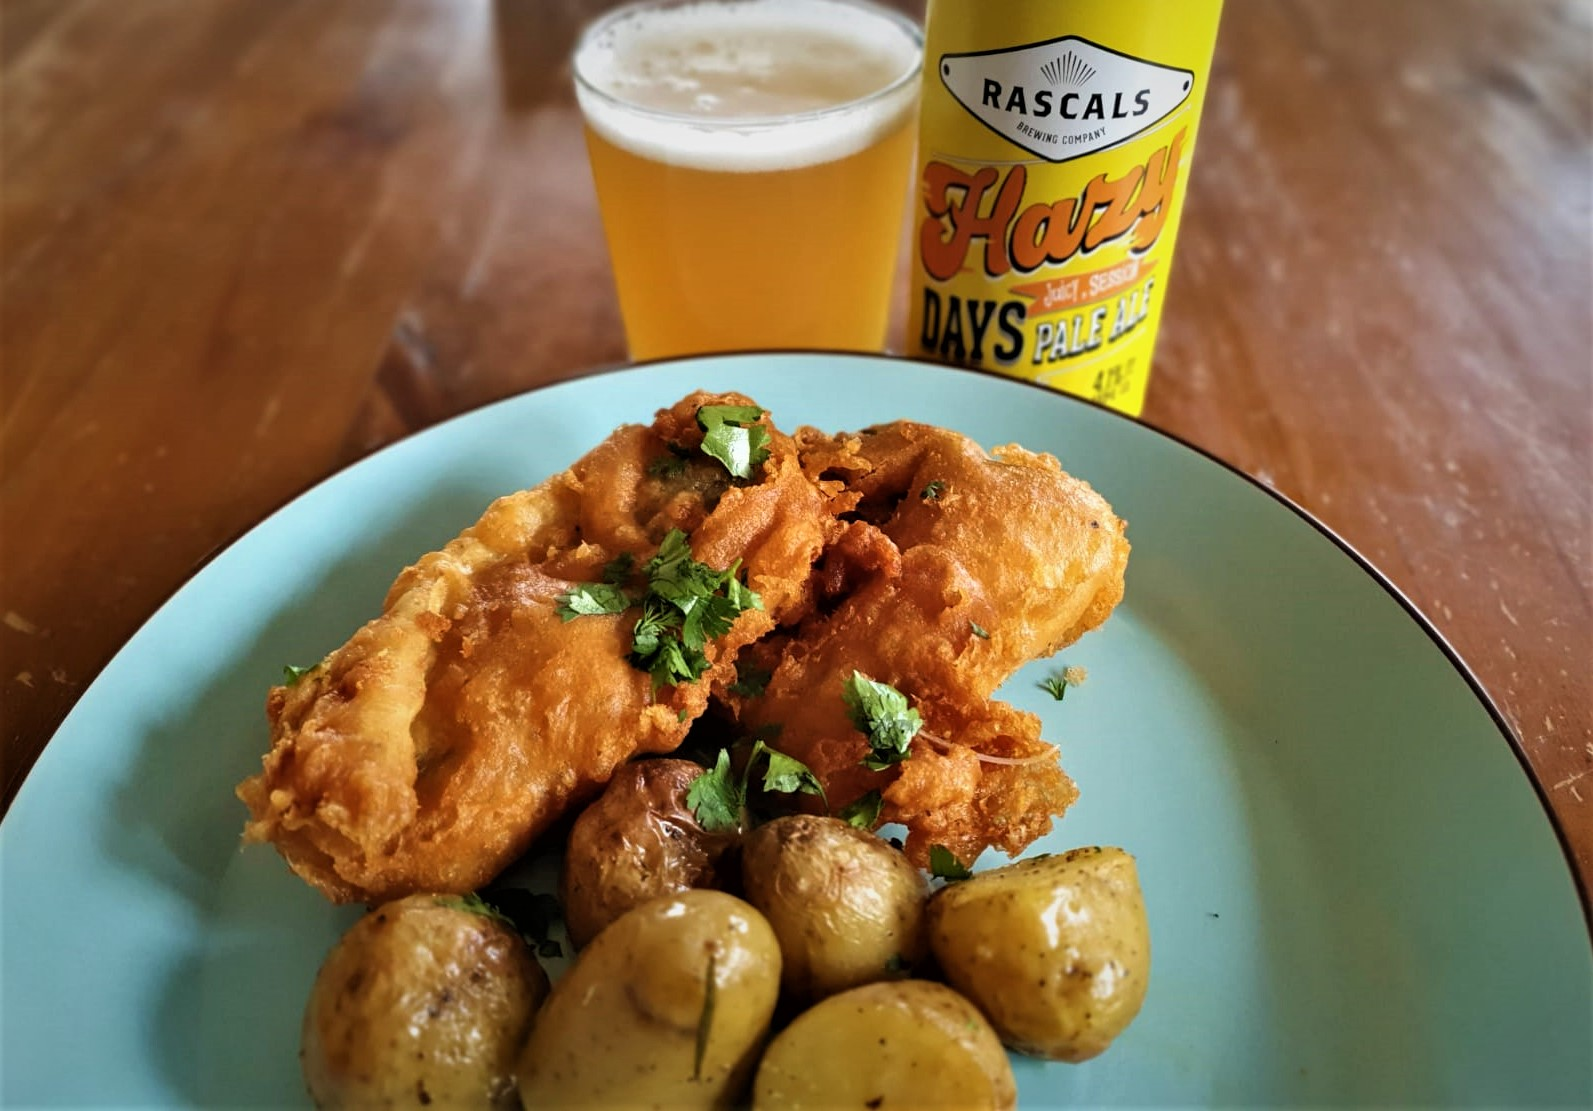 Beer recipes from Rascals Brewing company, using fresh Irish craft beer